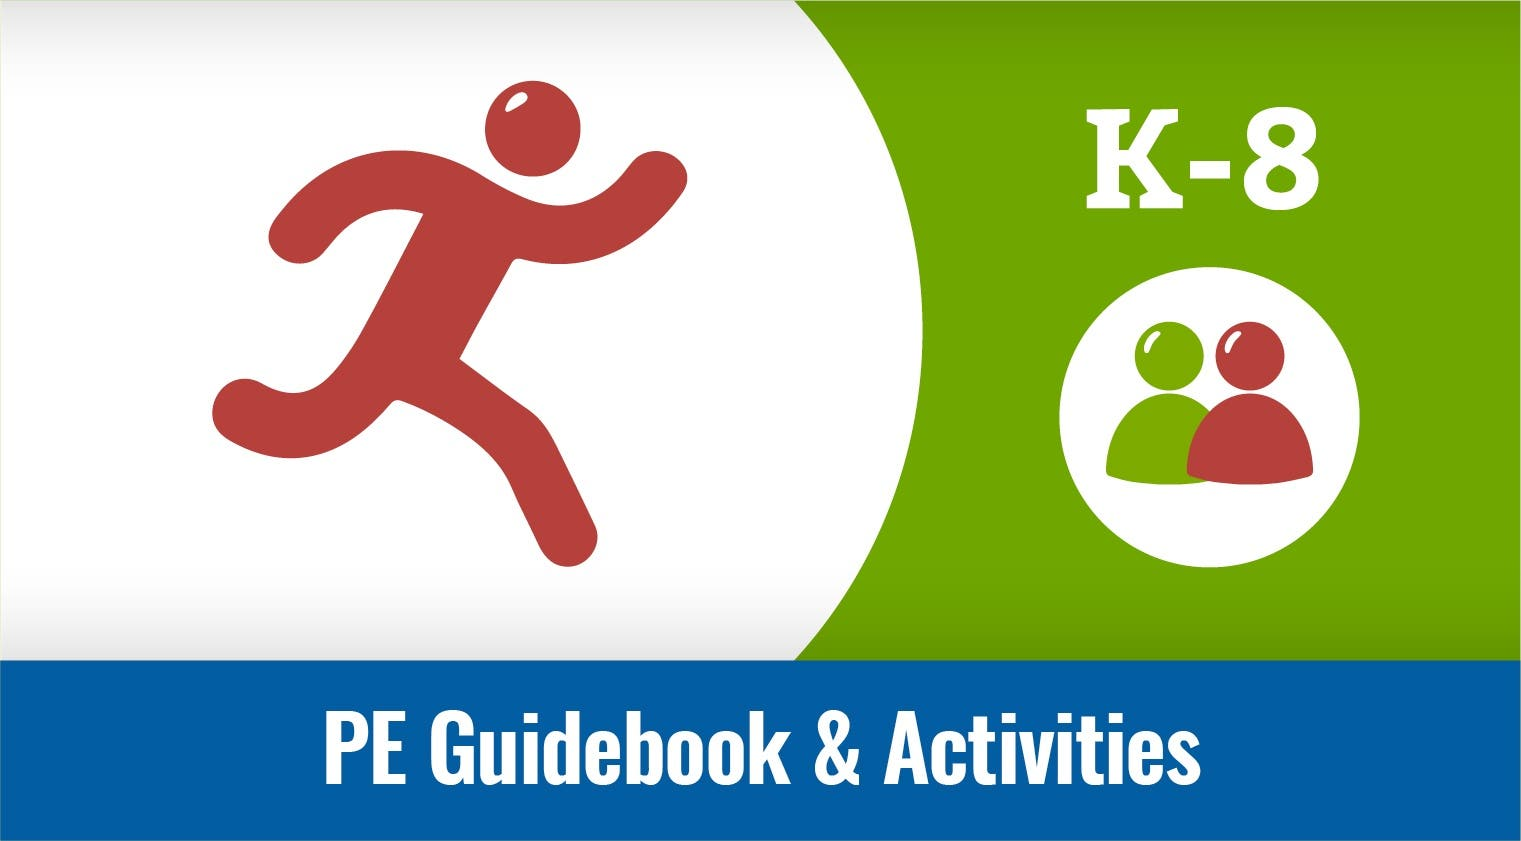 CATCH PE K-8 Guidebook